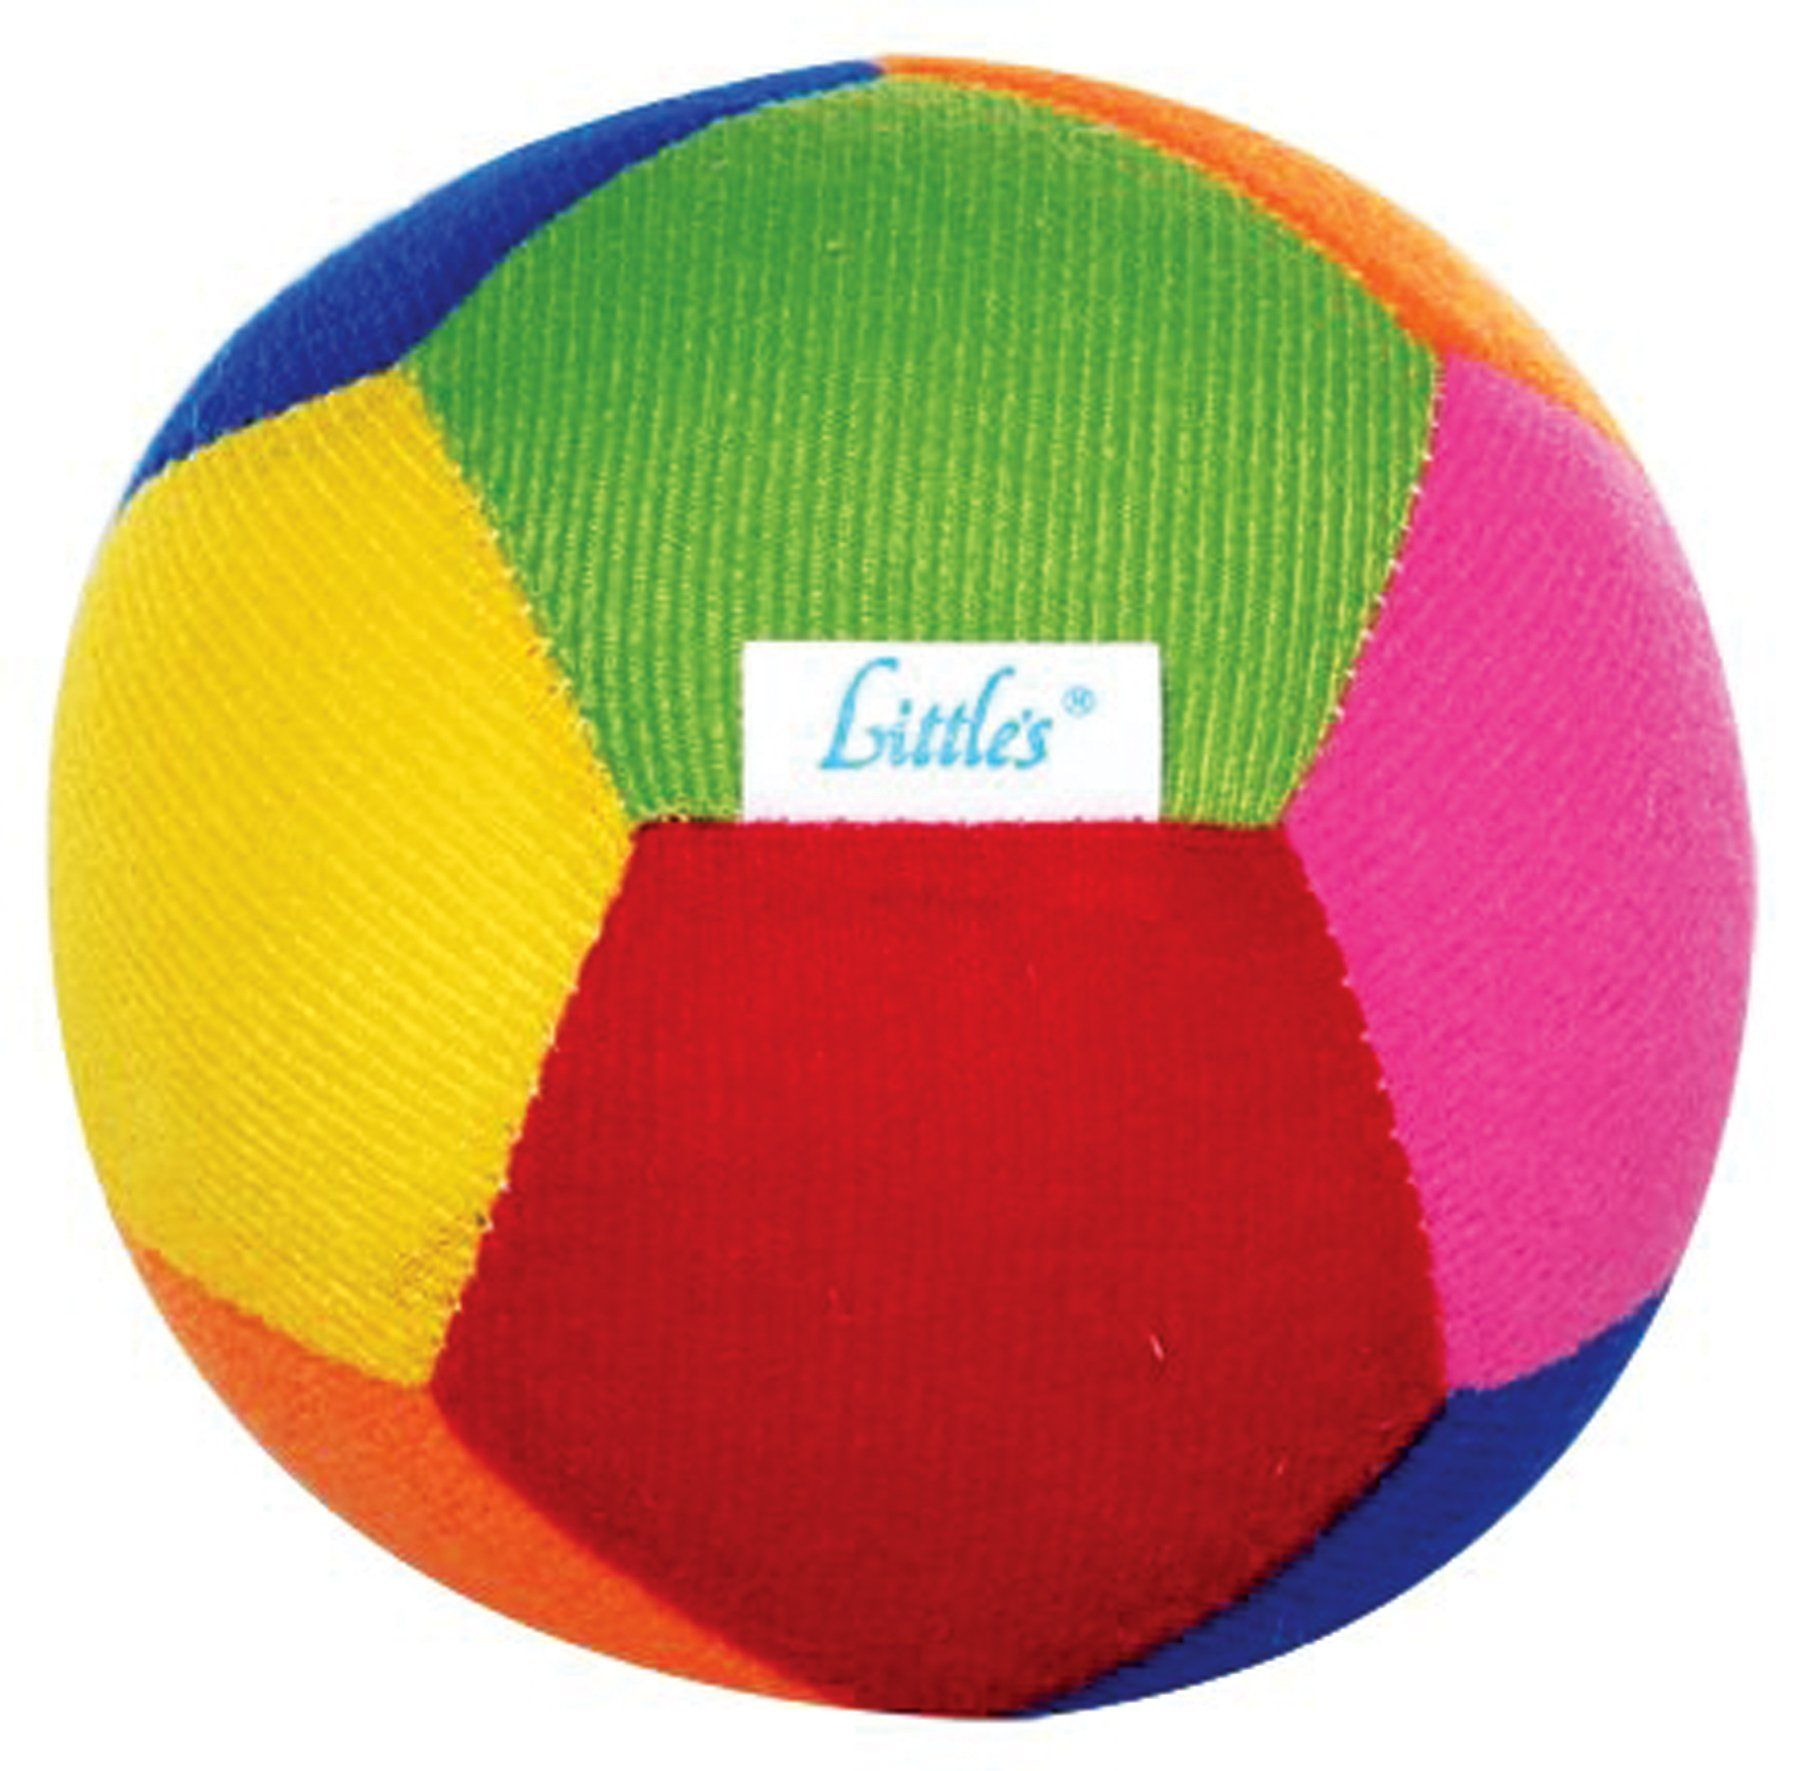 Little's Baby Ball (Multicolour) from Amazon.